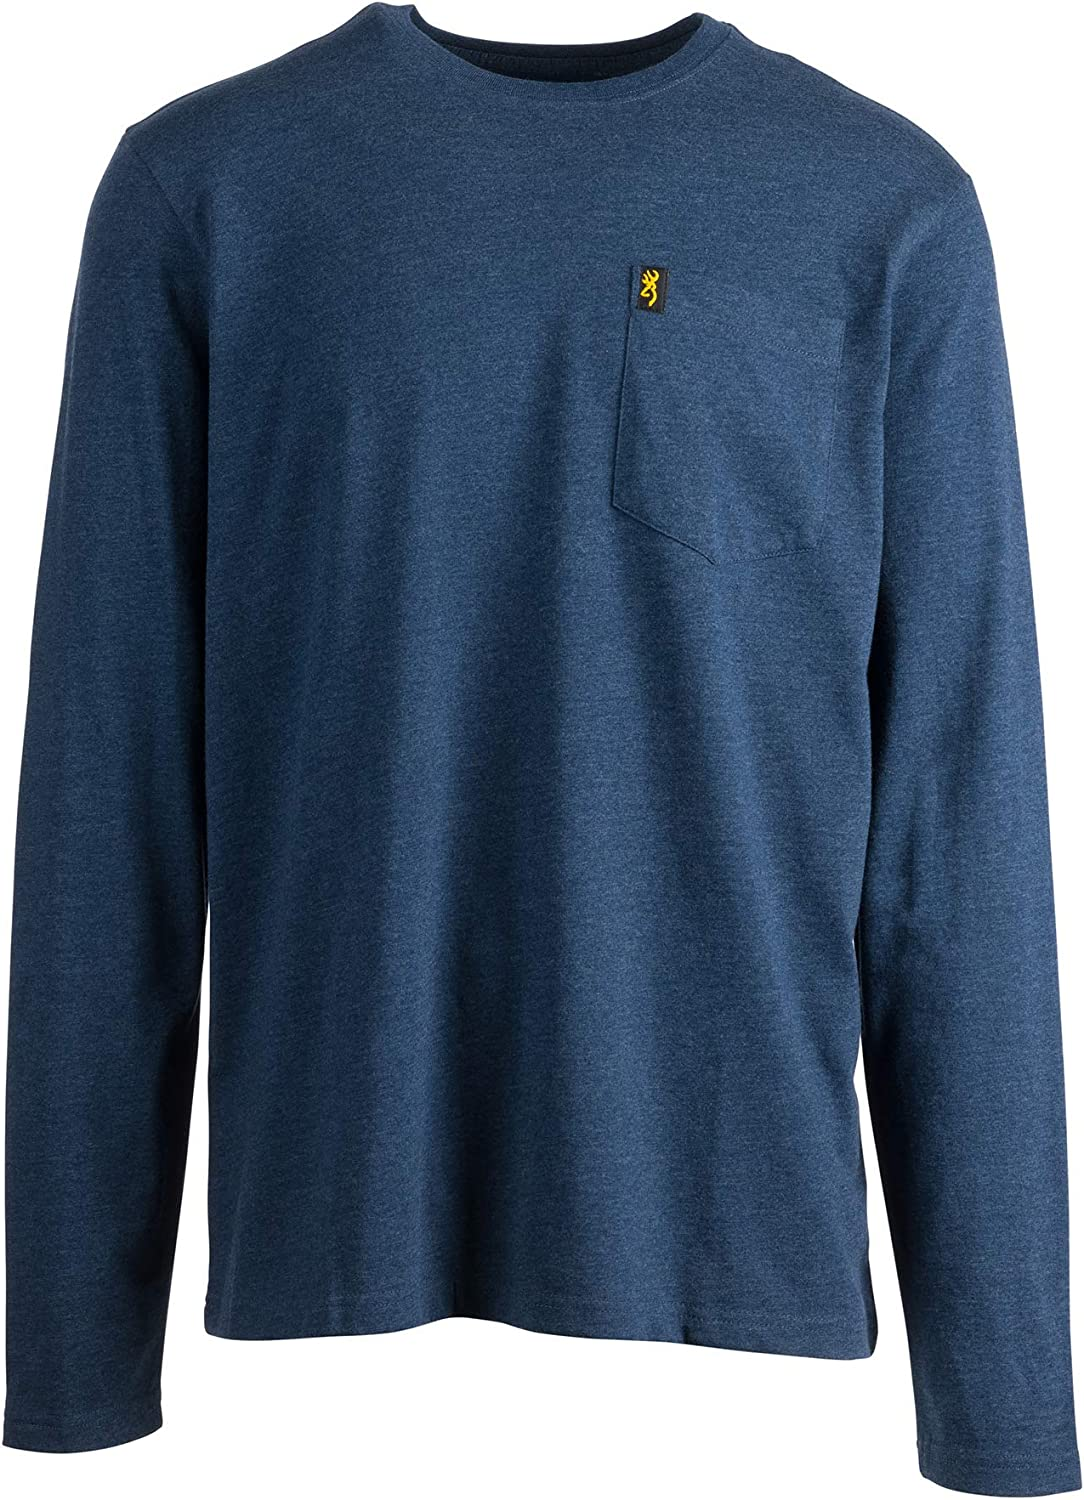 Browning Mens Long Sleeve Pocket Tee T-Shirt